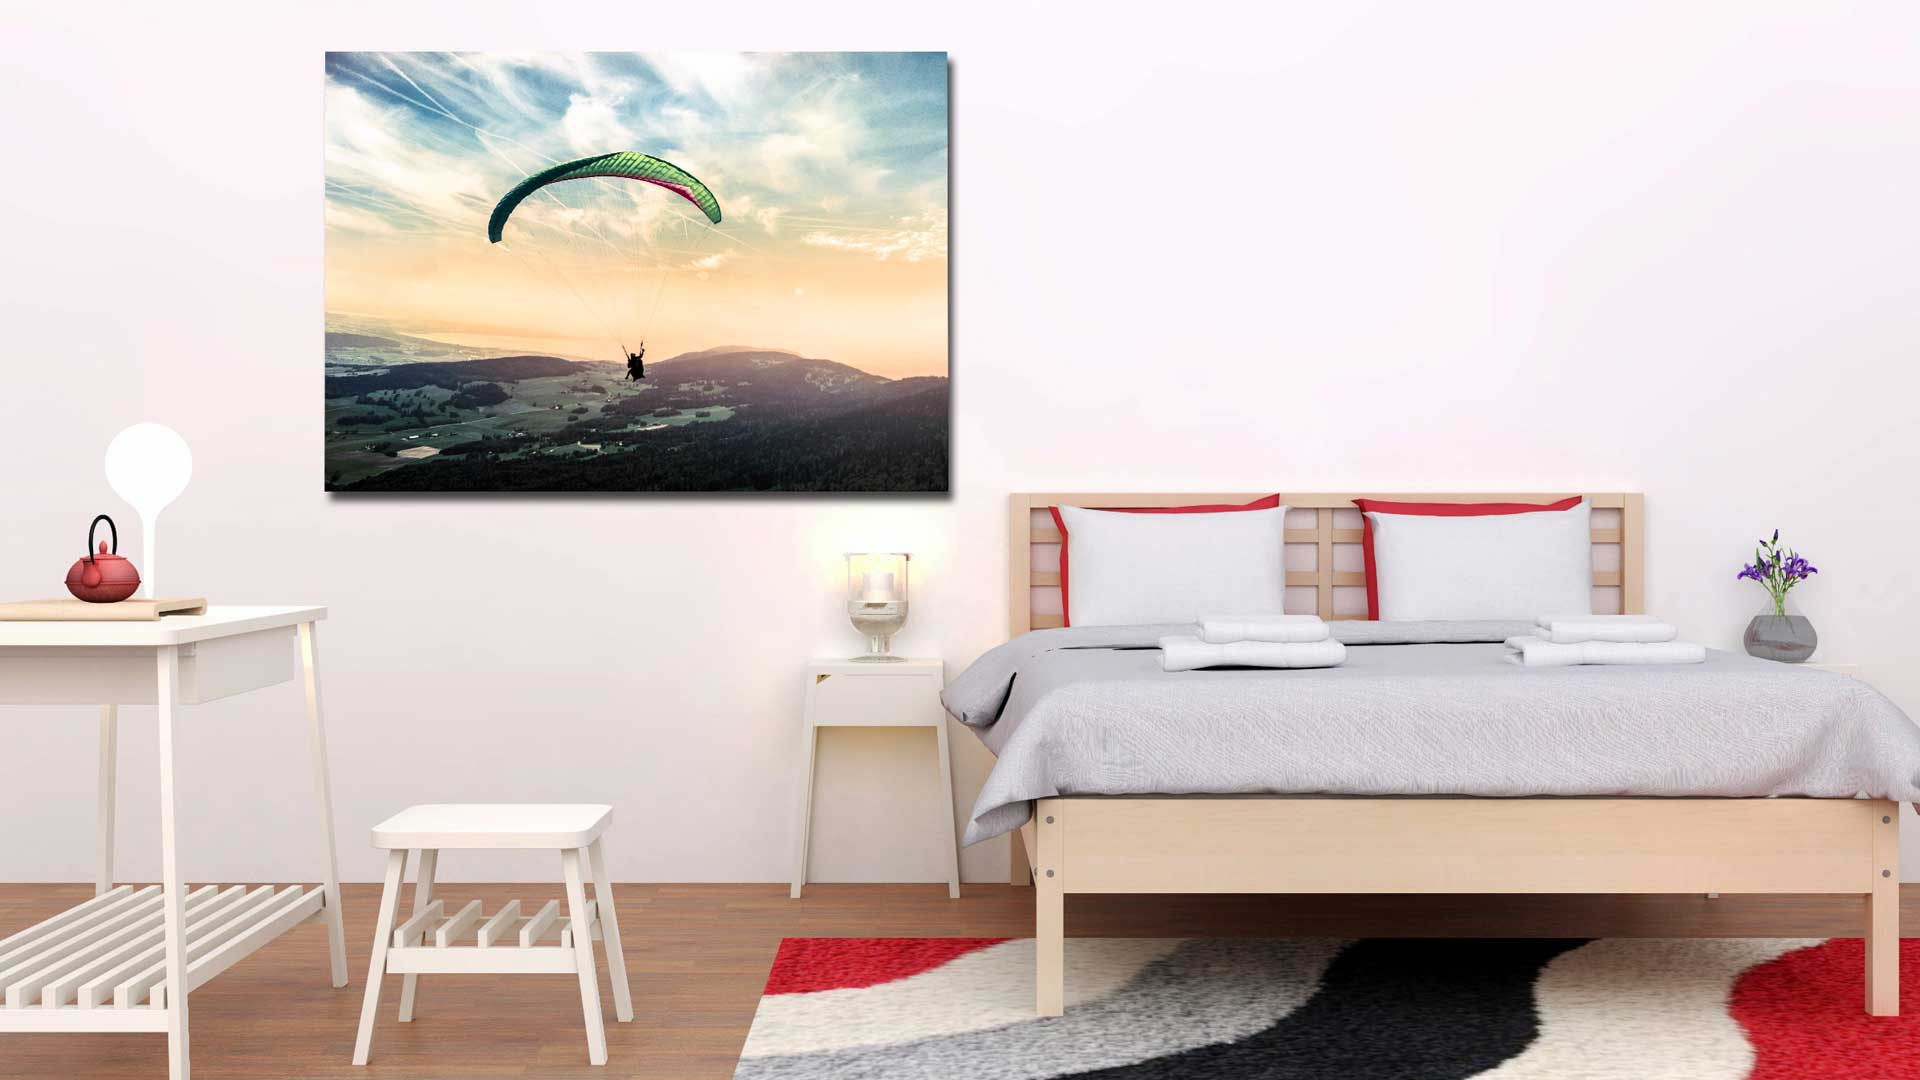 Print photos to posters